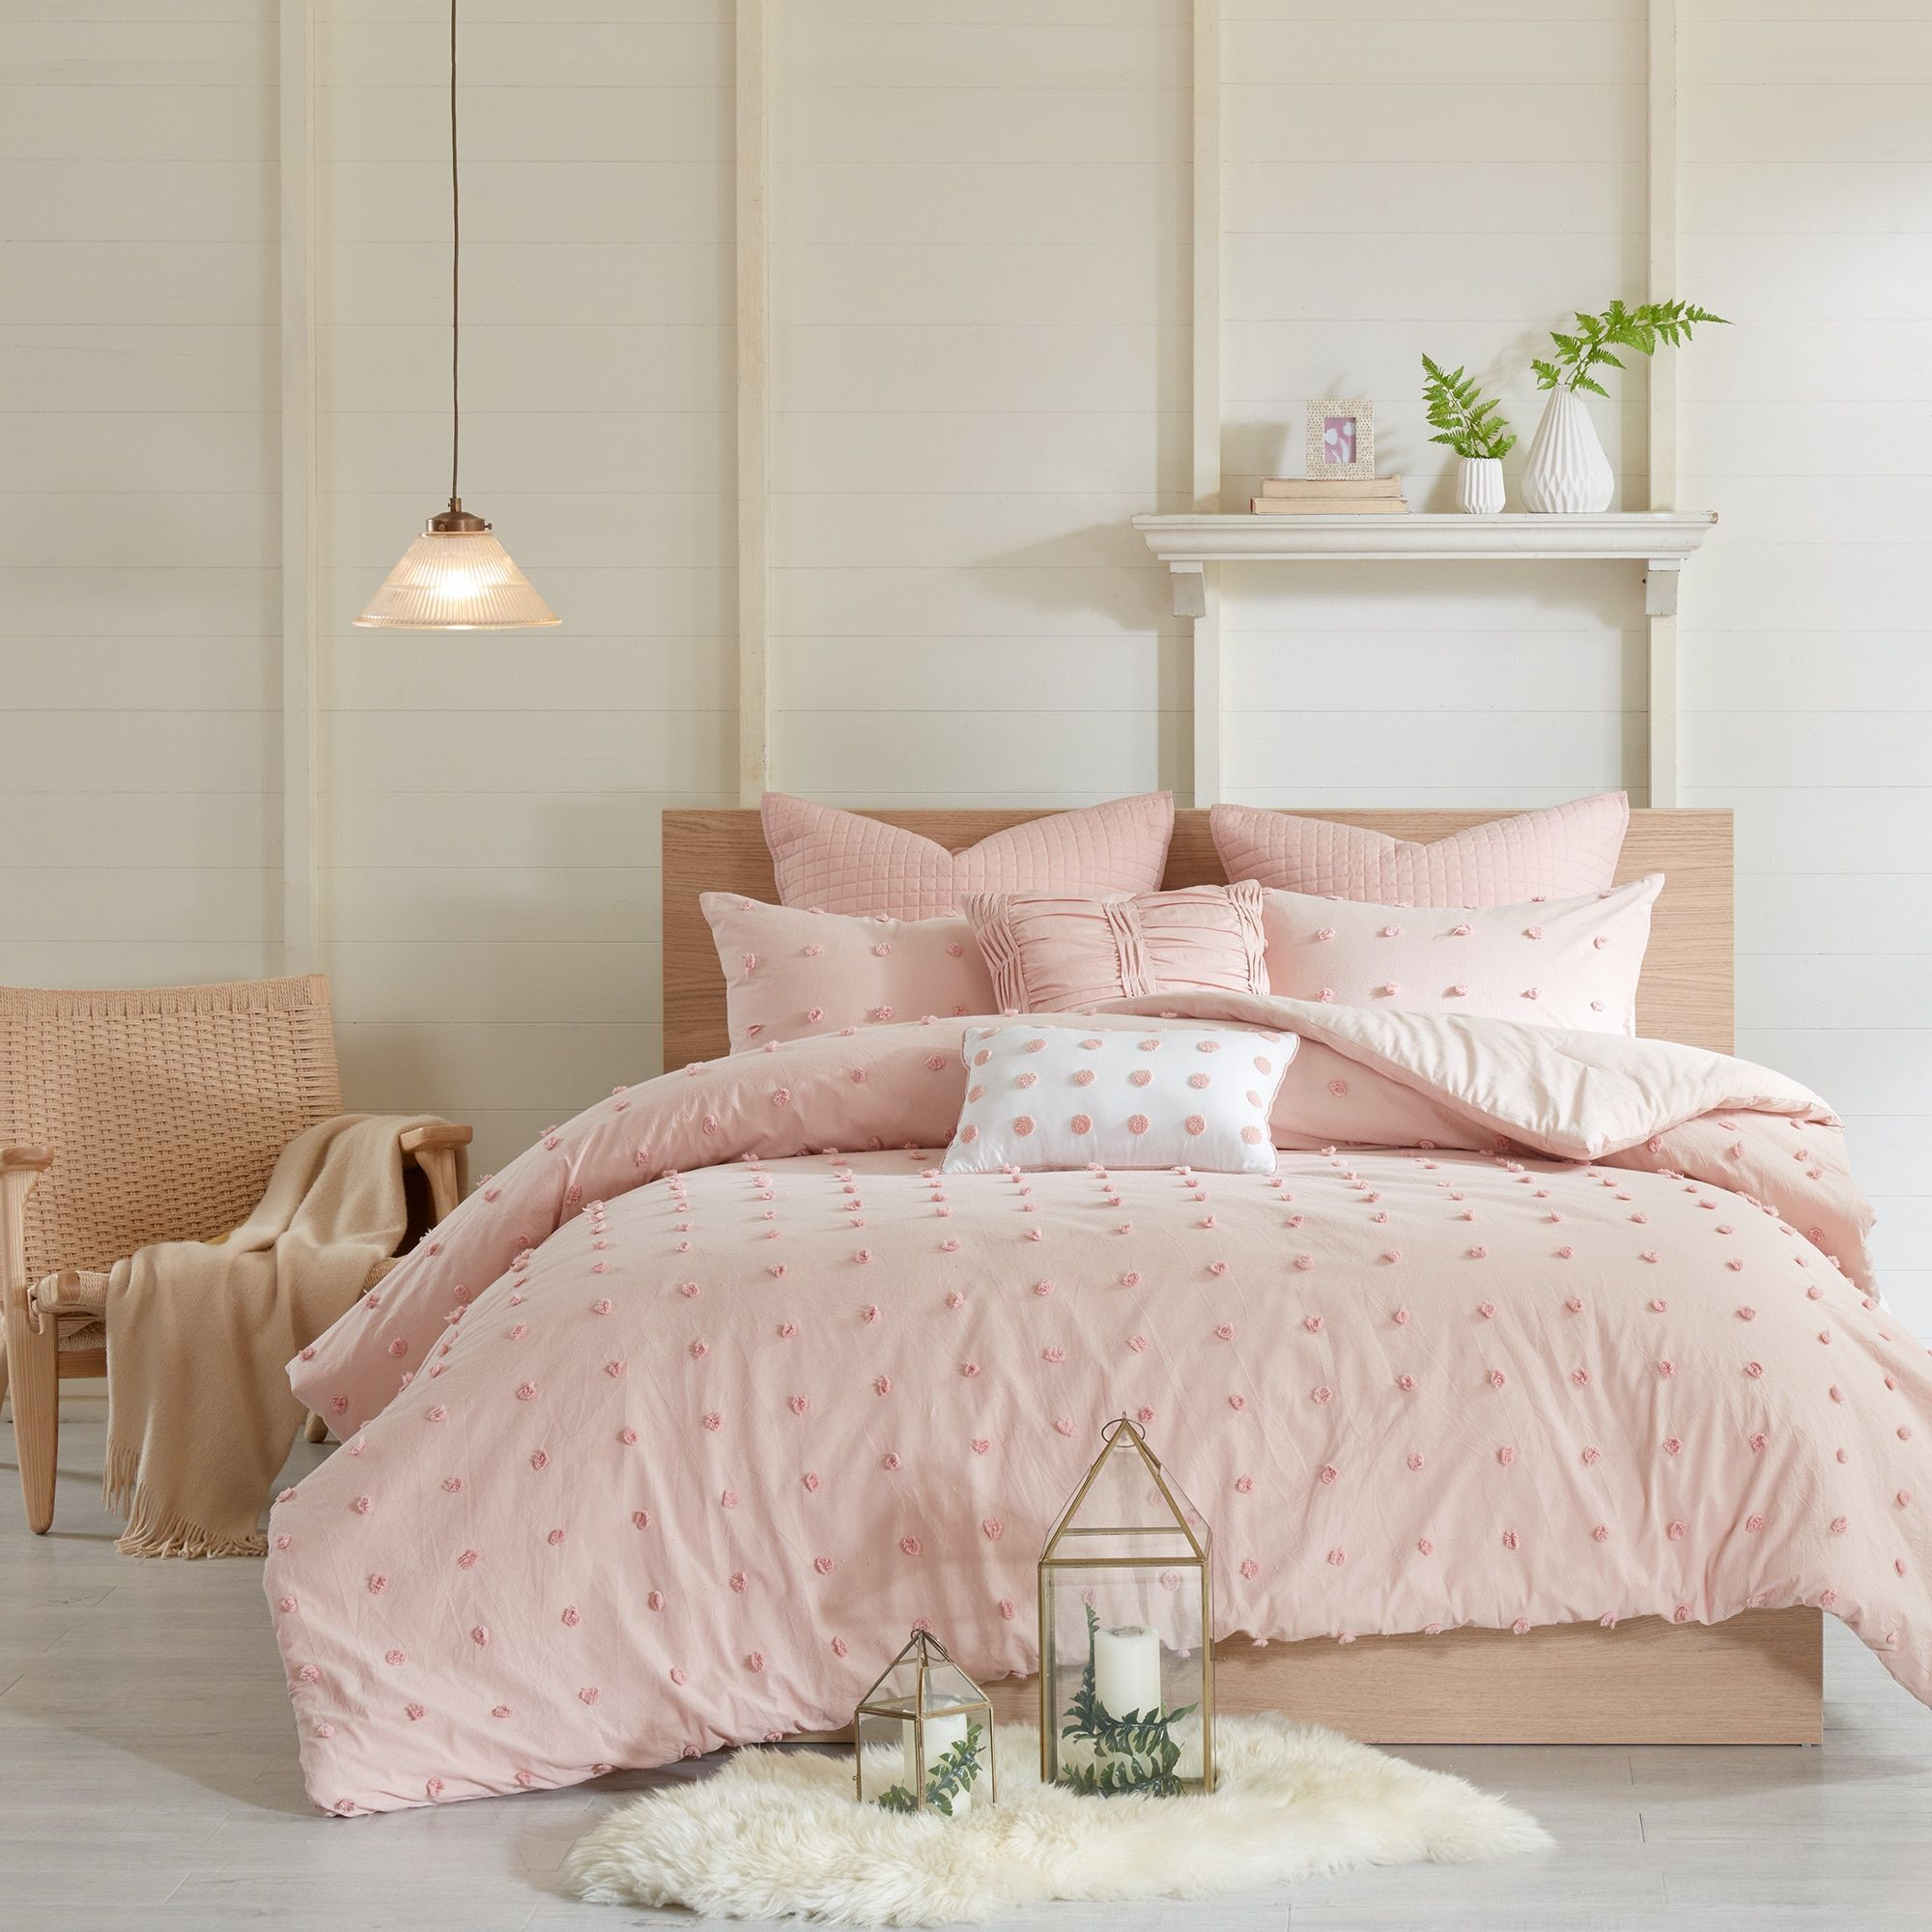 interior of endearing cover covers living duvet awesome bedding according perspective winsome to best within dusty pink elegant the hot baby designers room for comforter rose